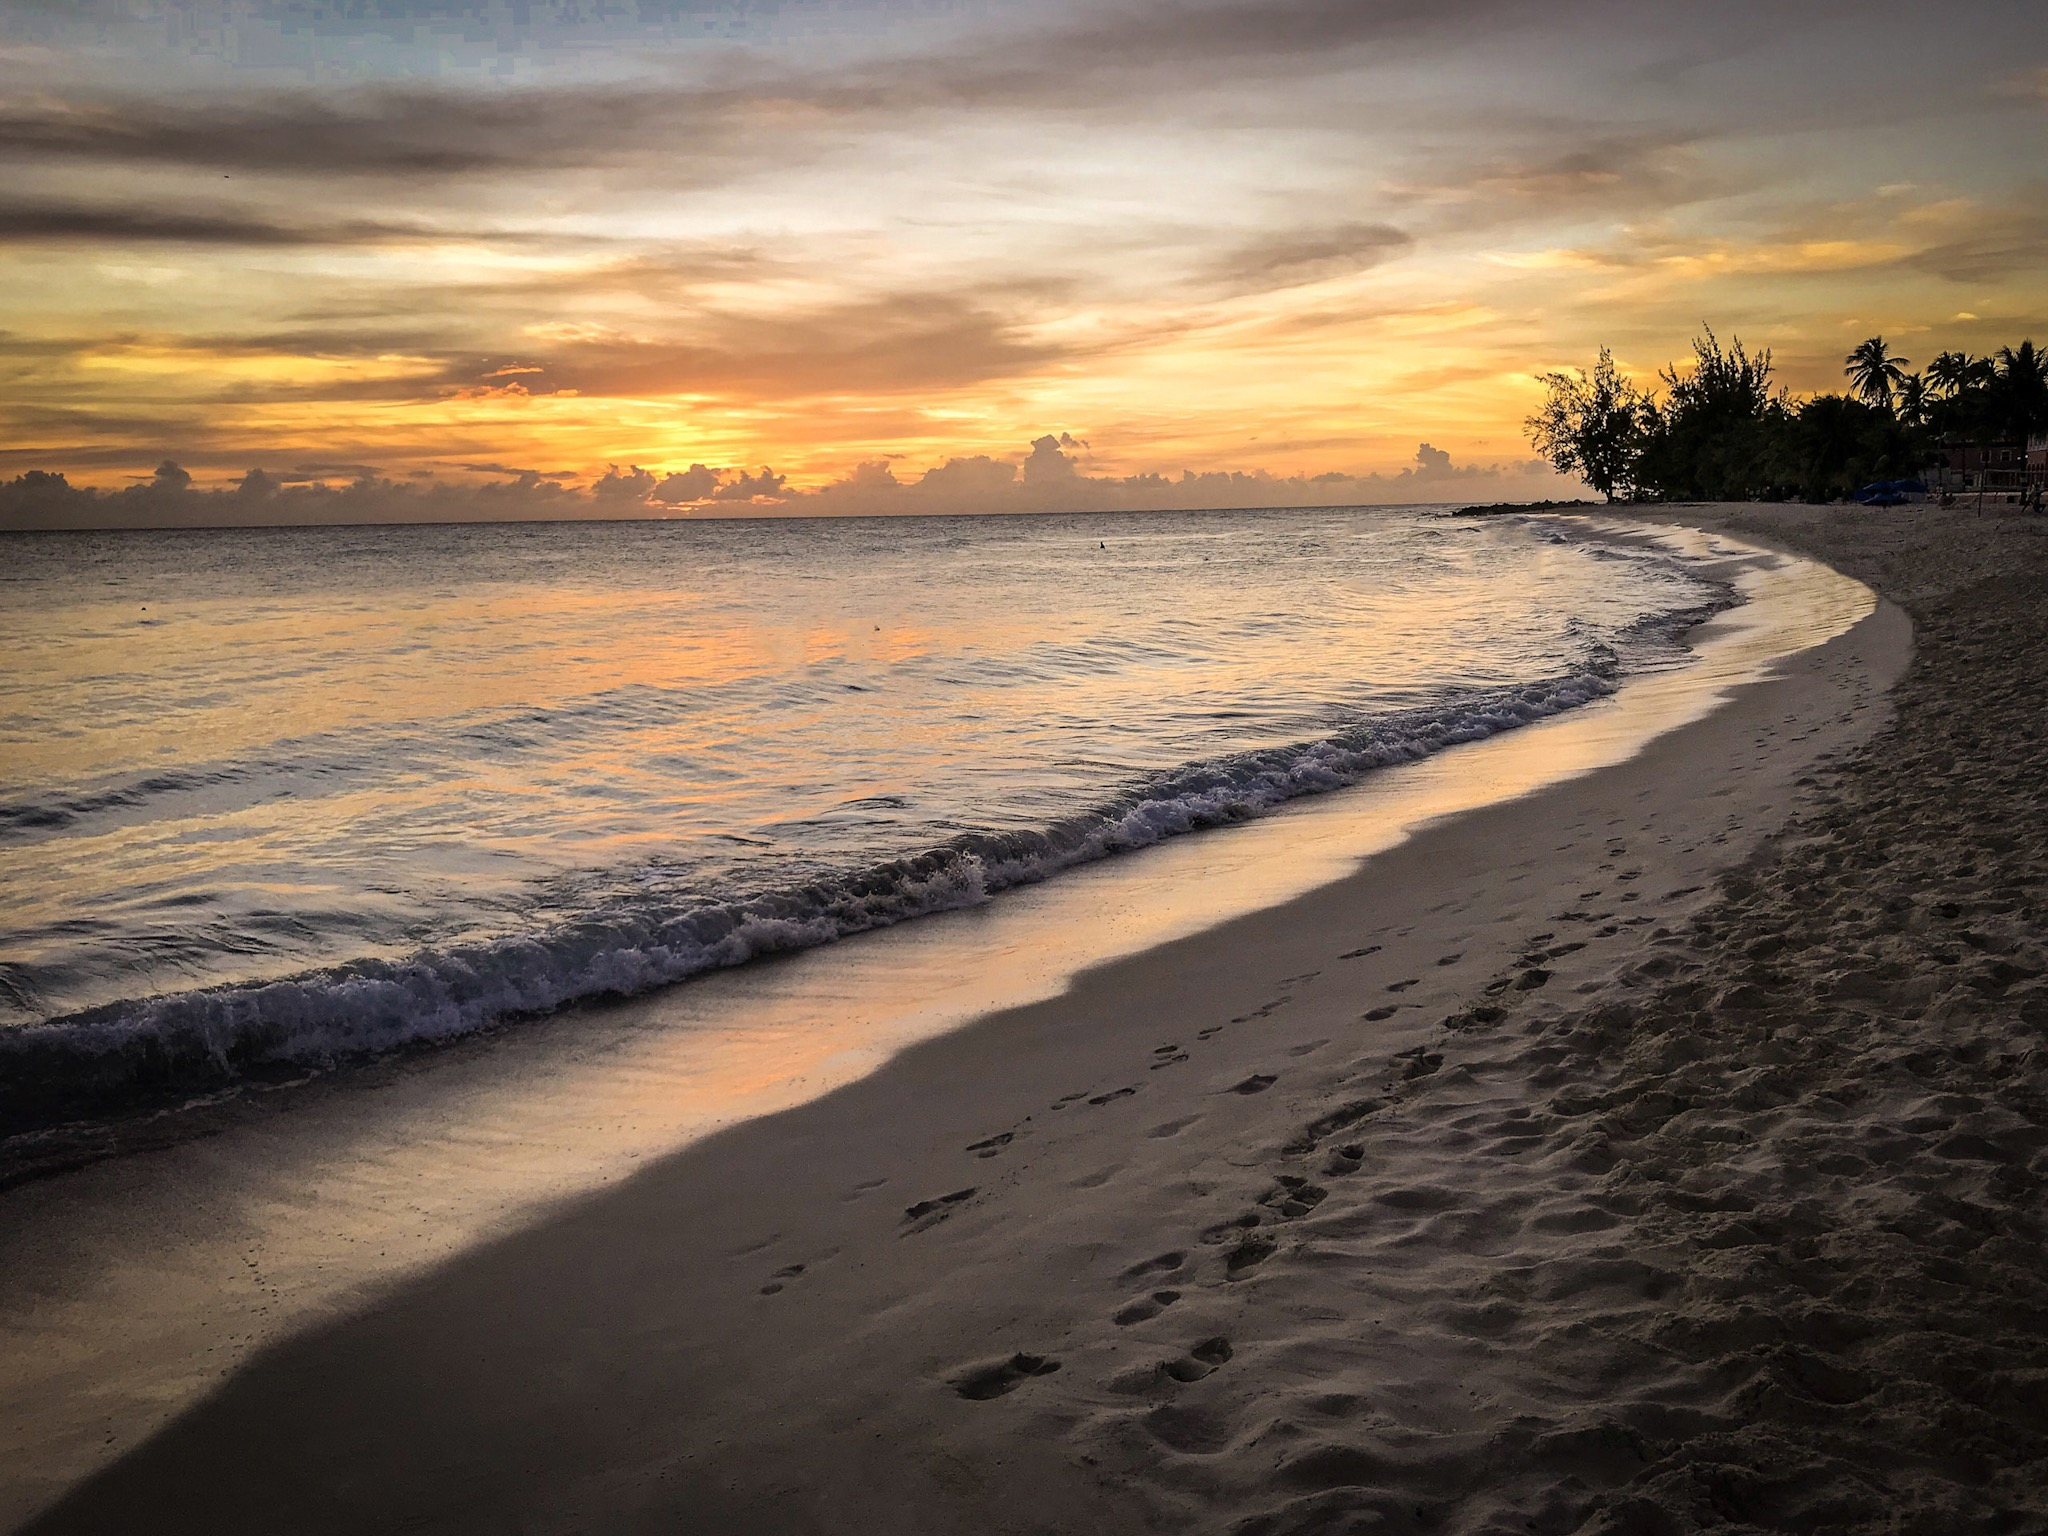 Dover Beach, Barbados - iPhone travel photography